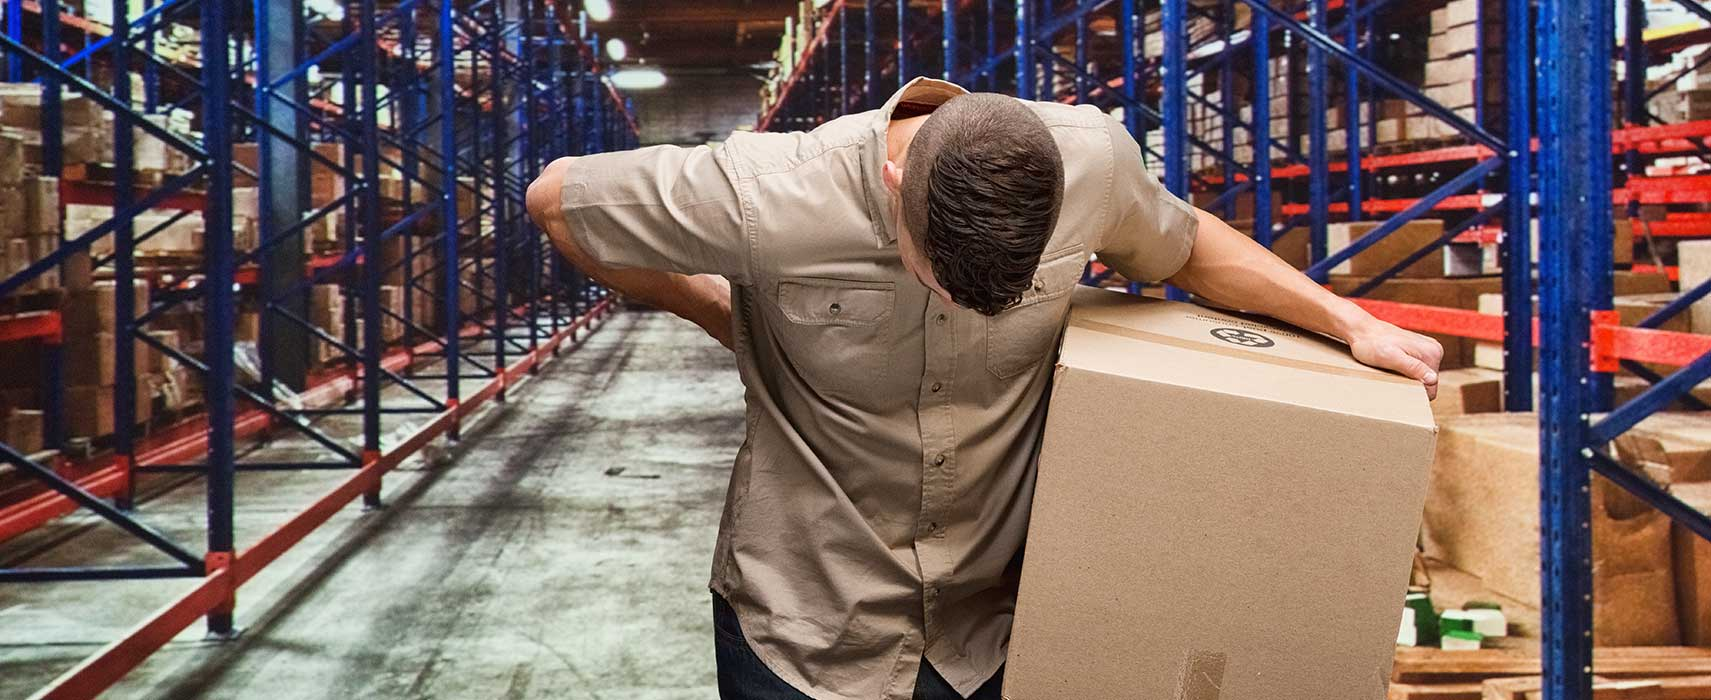 Injured worker and worker's compensation insurance